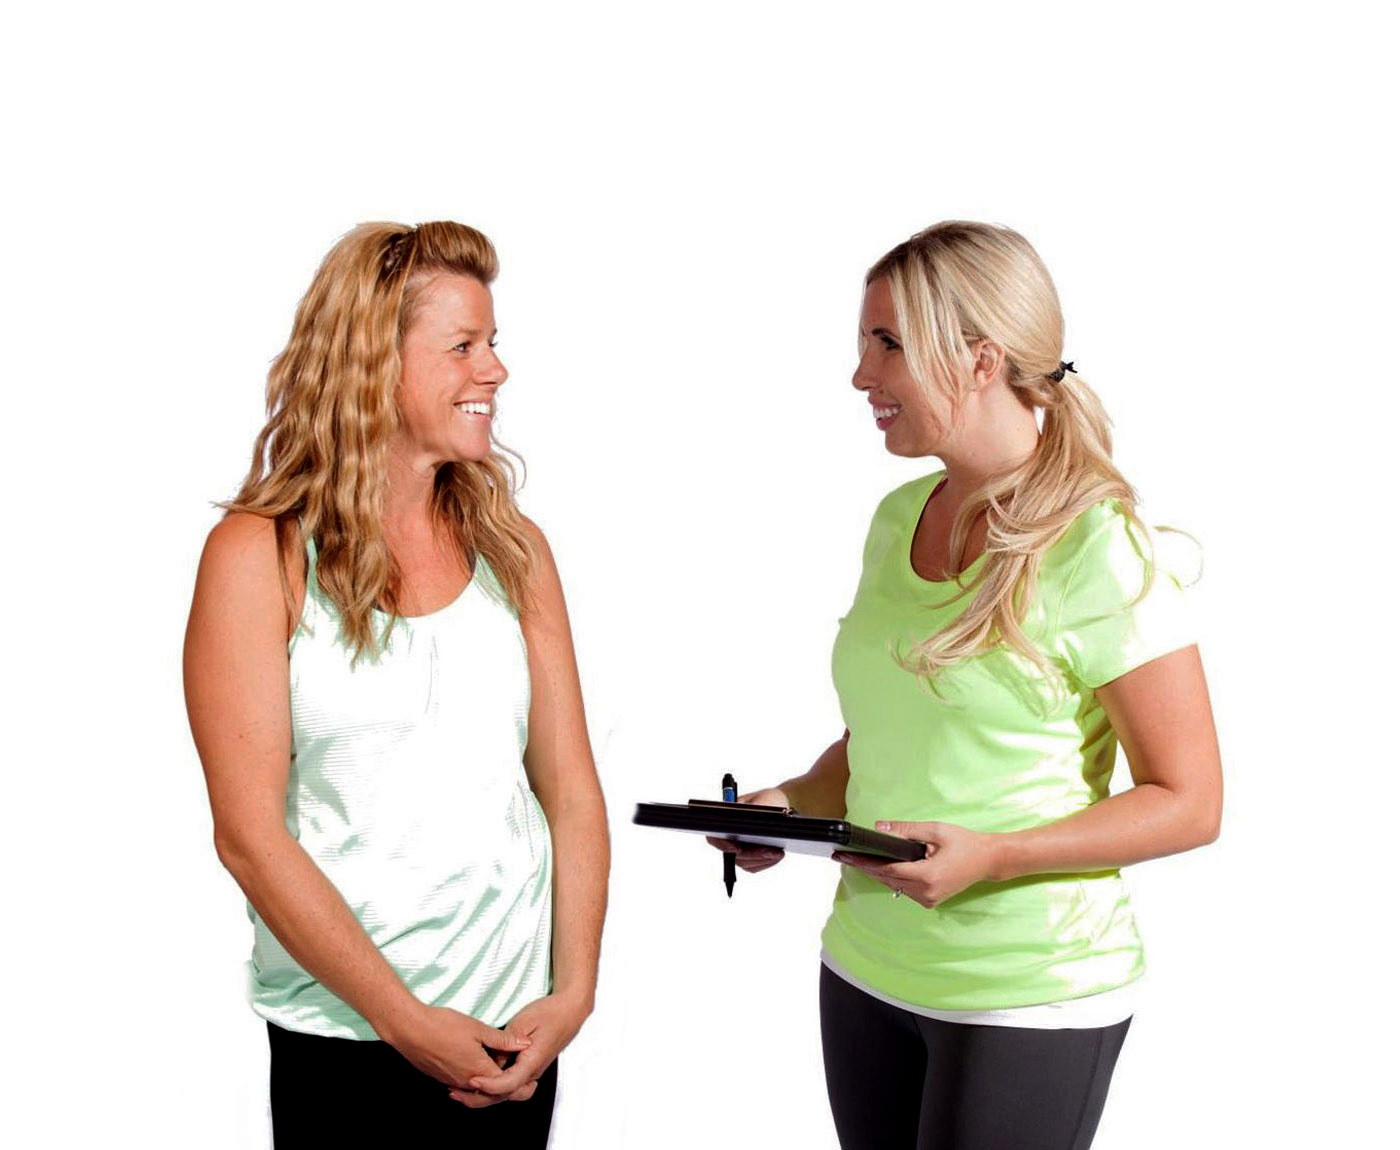 phoebe-flanagan-fitness-trainer-with-female-client-holding-clipboard-fairbanks-alaska-web.jpg